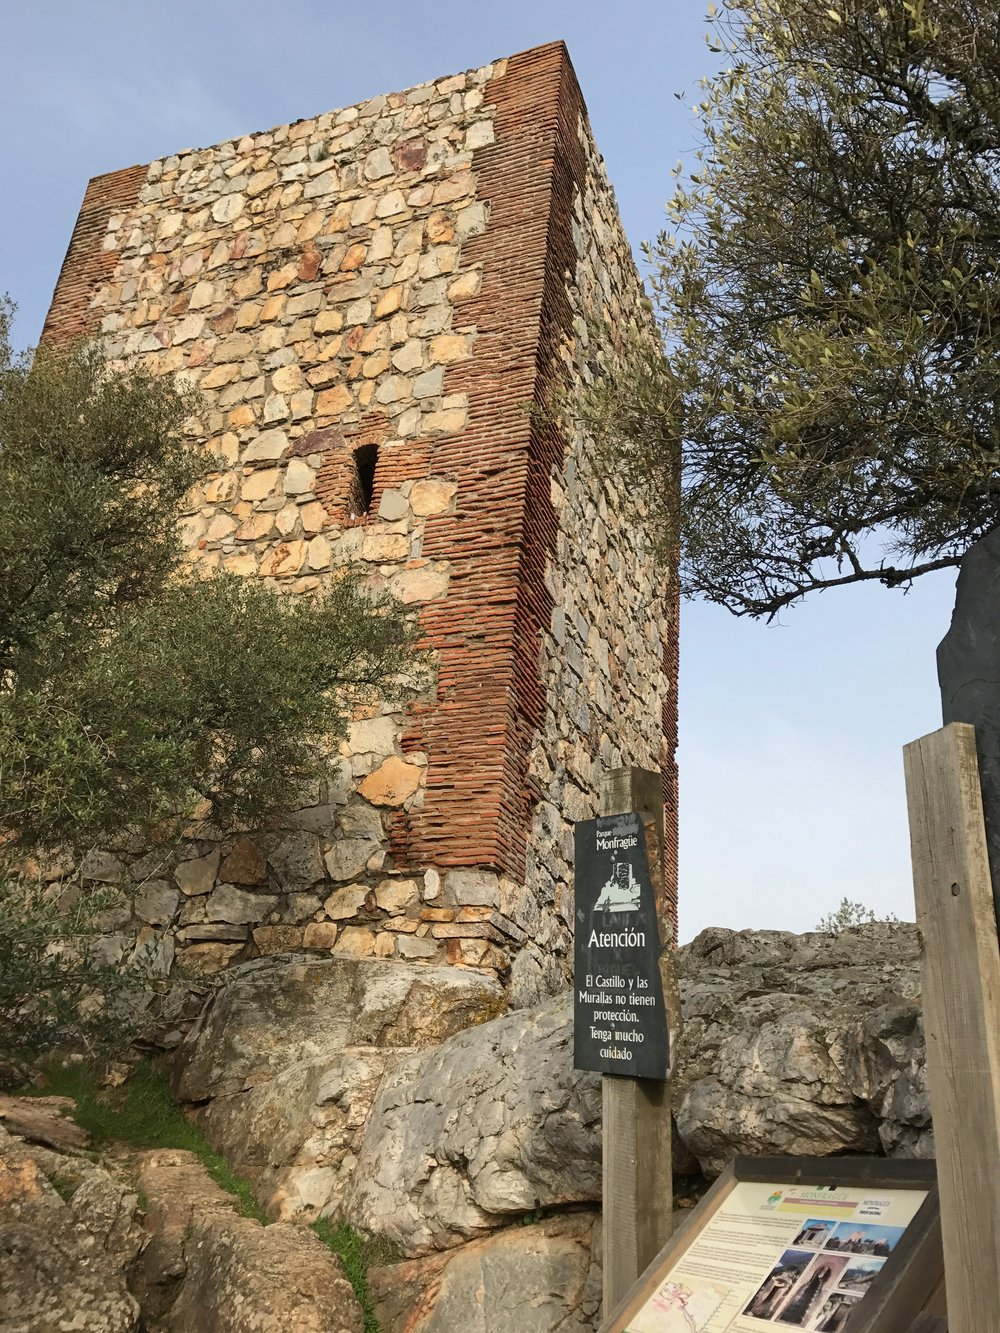 The castle in Monfragüe National Park offers dynamite views of griffon and black vultures as well as song birds on the trail up to it.